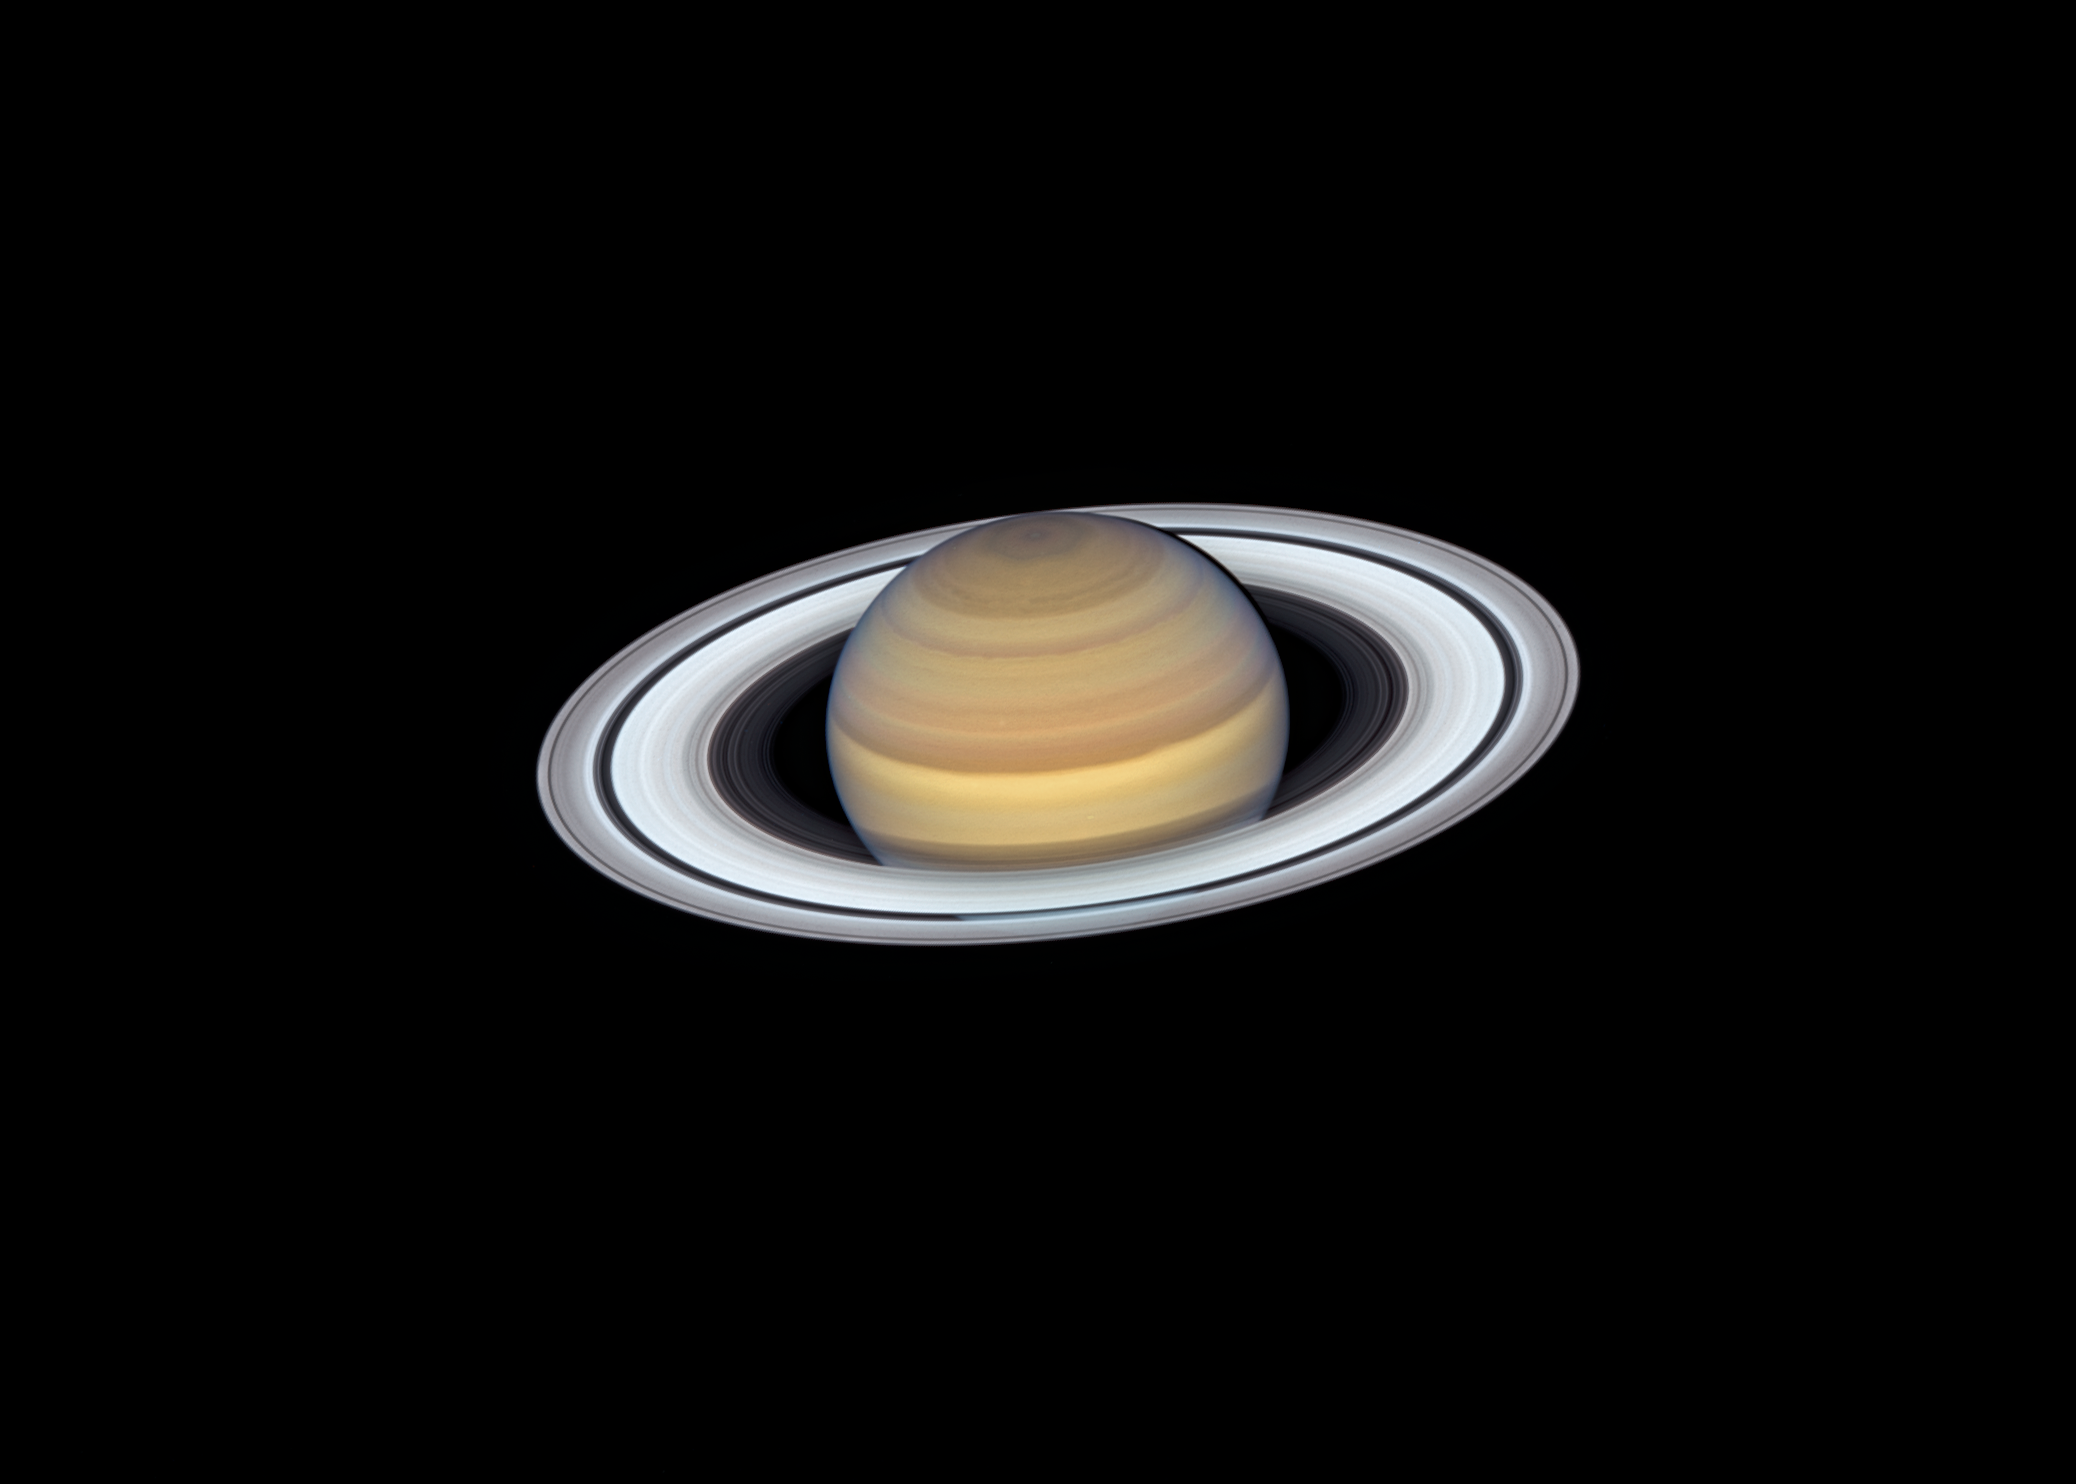 Saturn's Rings Shine in Hubble's Latest Portrait | NASA